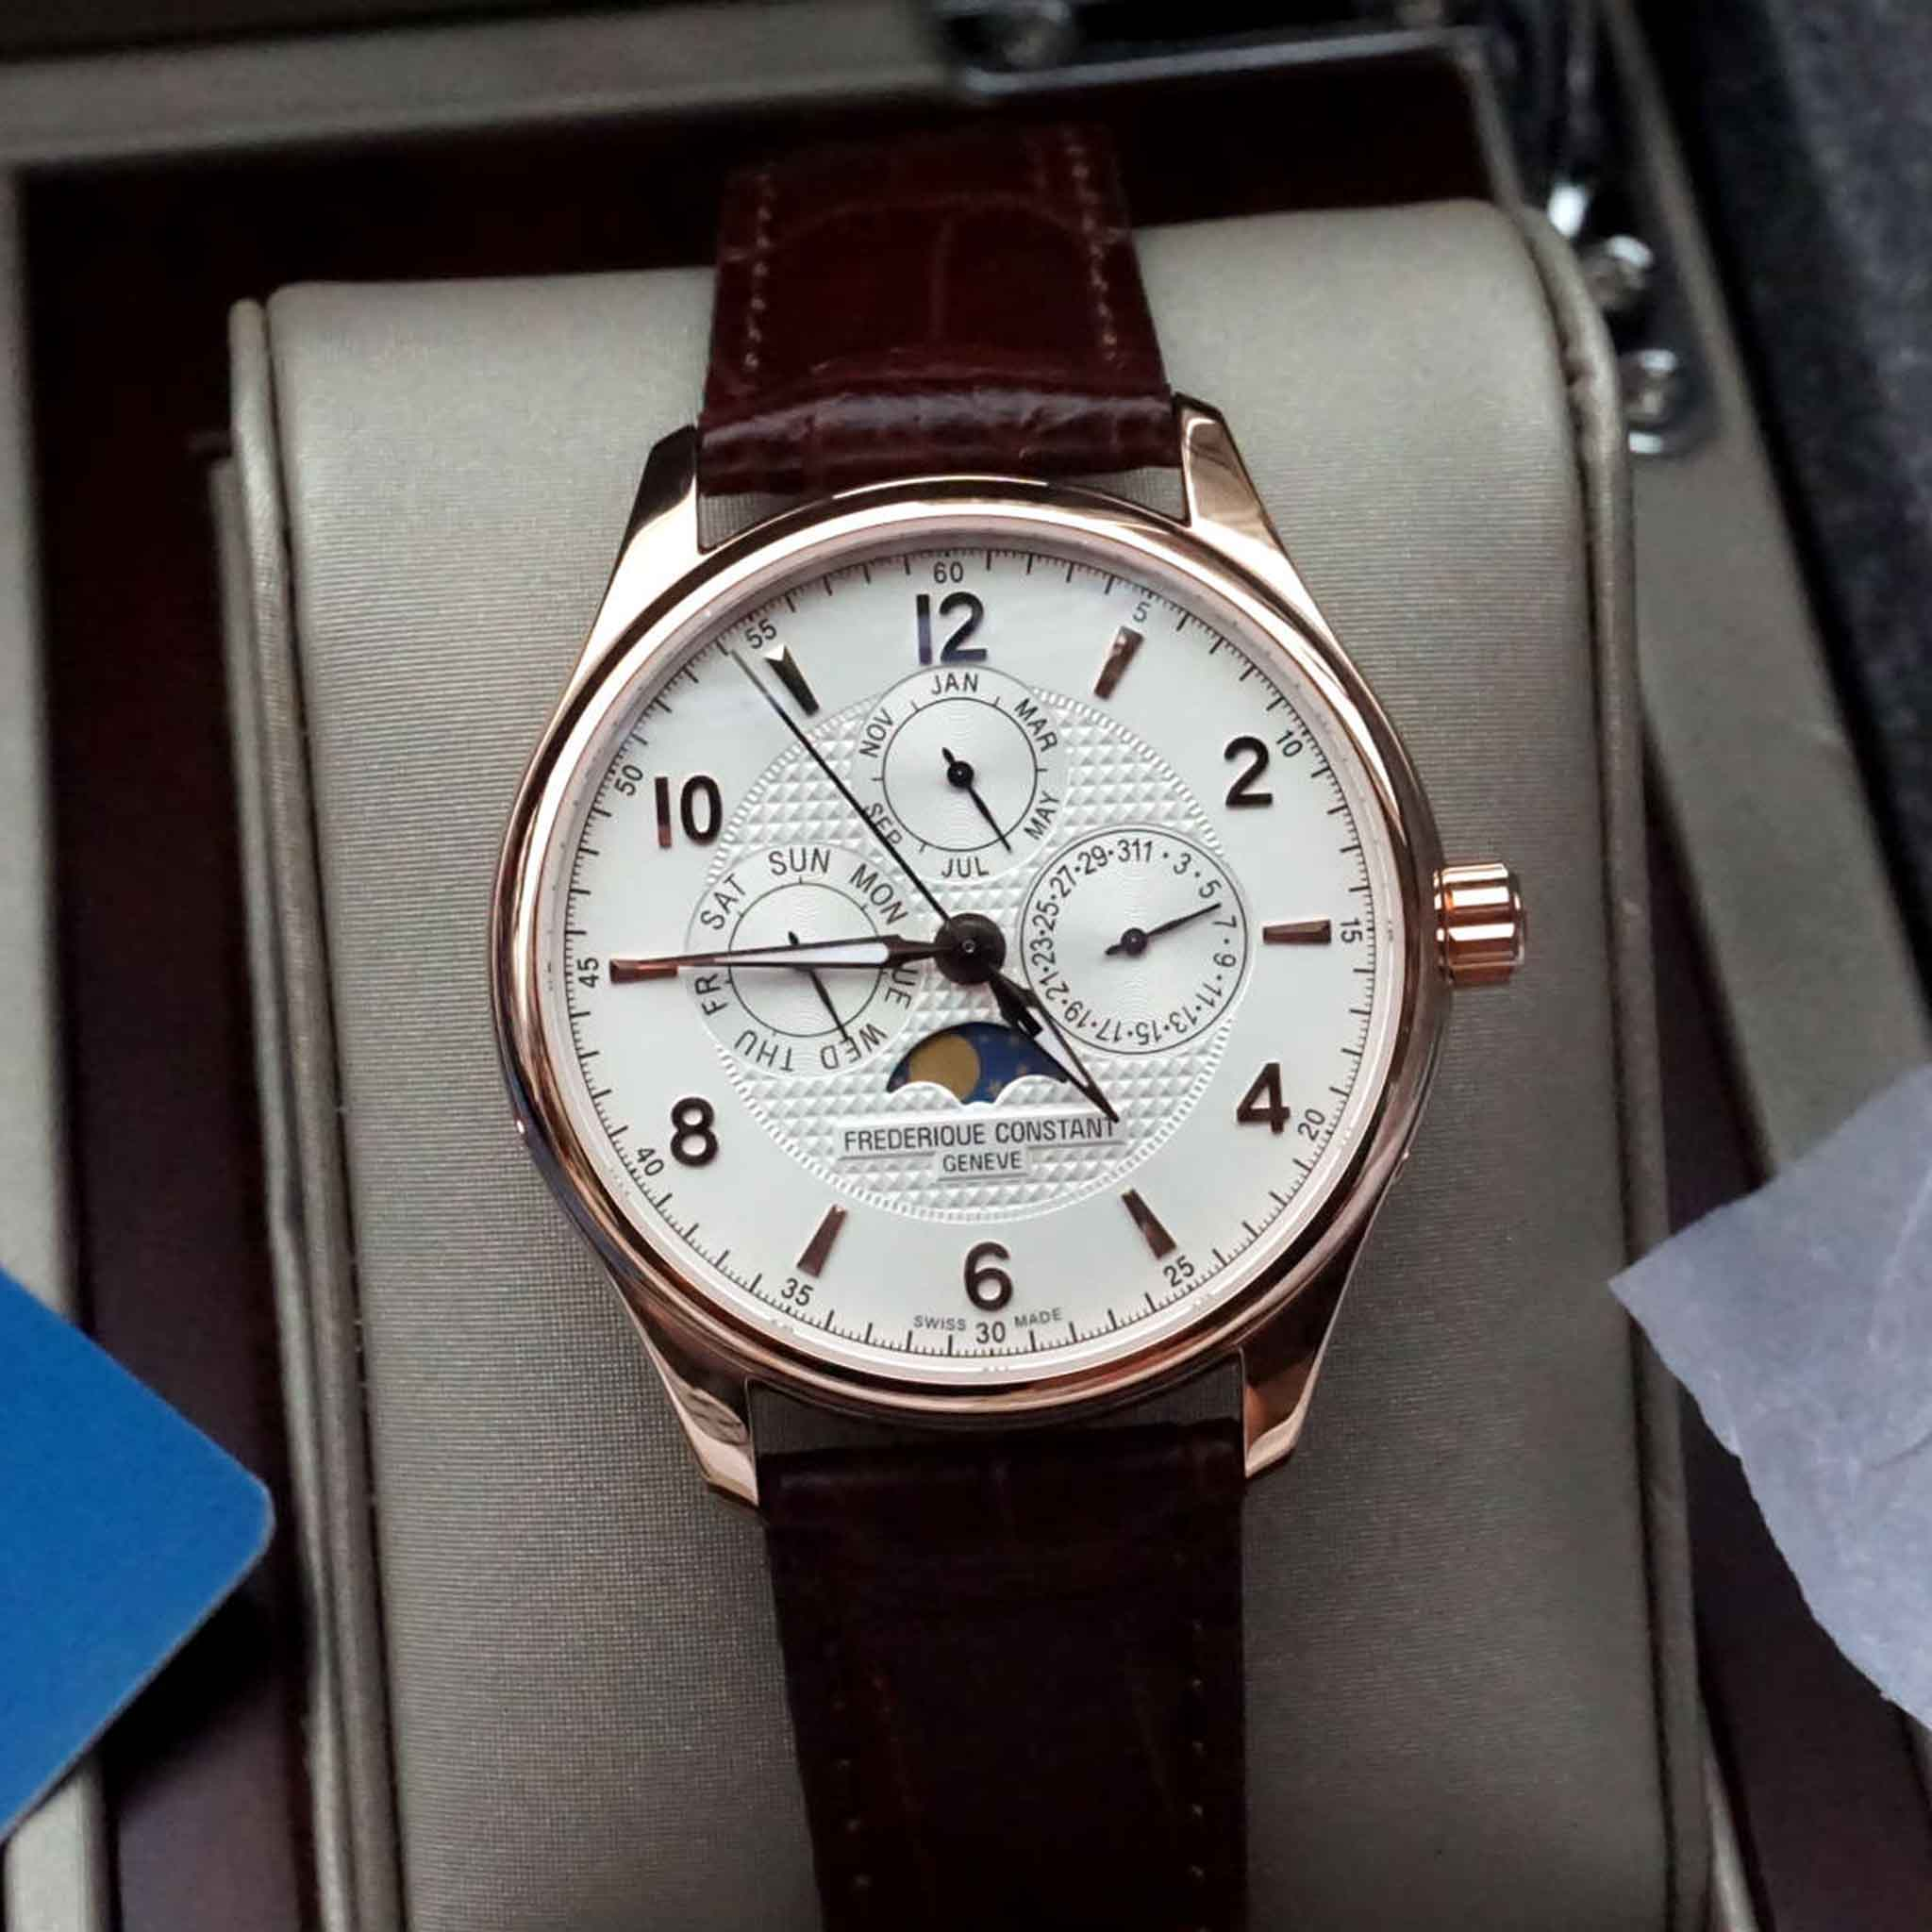 FREDERIQUE CONSTANT RUNABOUT MOONPHASE FC-365RM5B4 Runabout Limited 2888 chiếc - Thép không gỉ mạ vàng